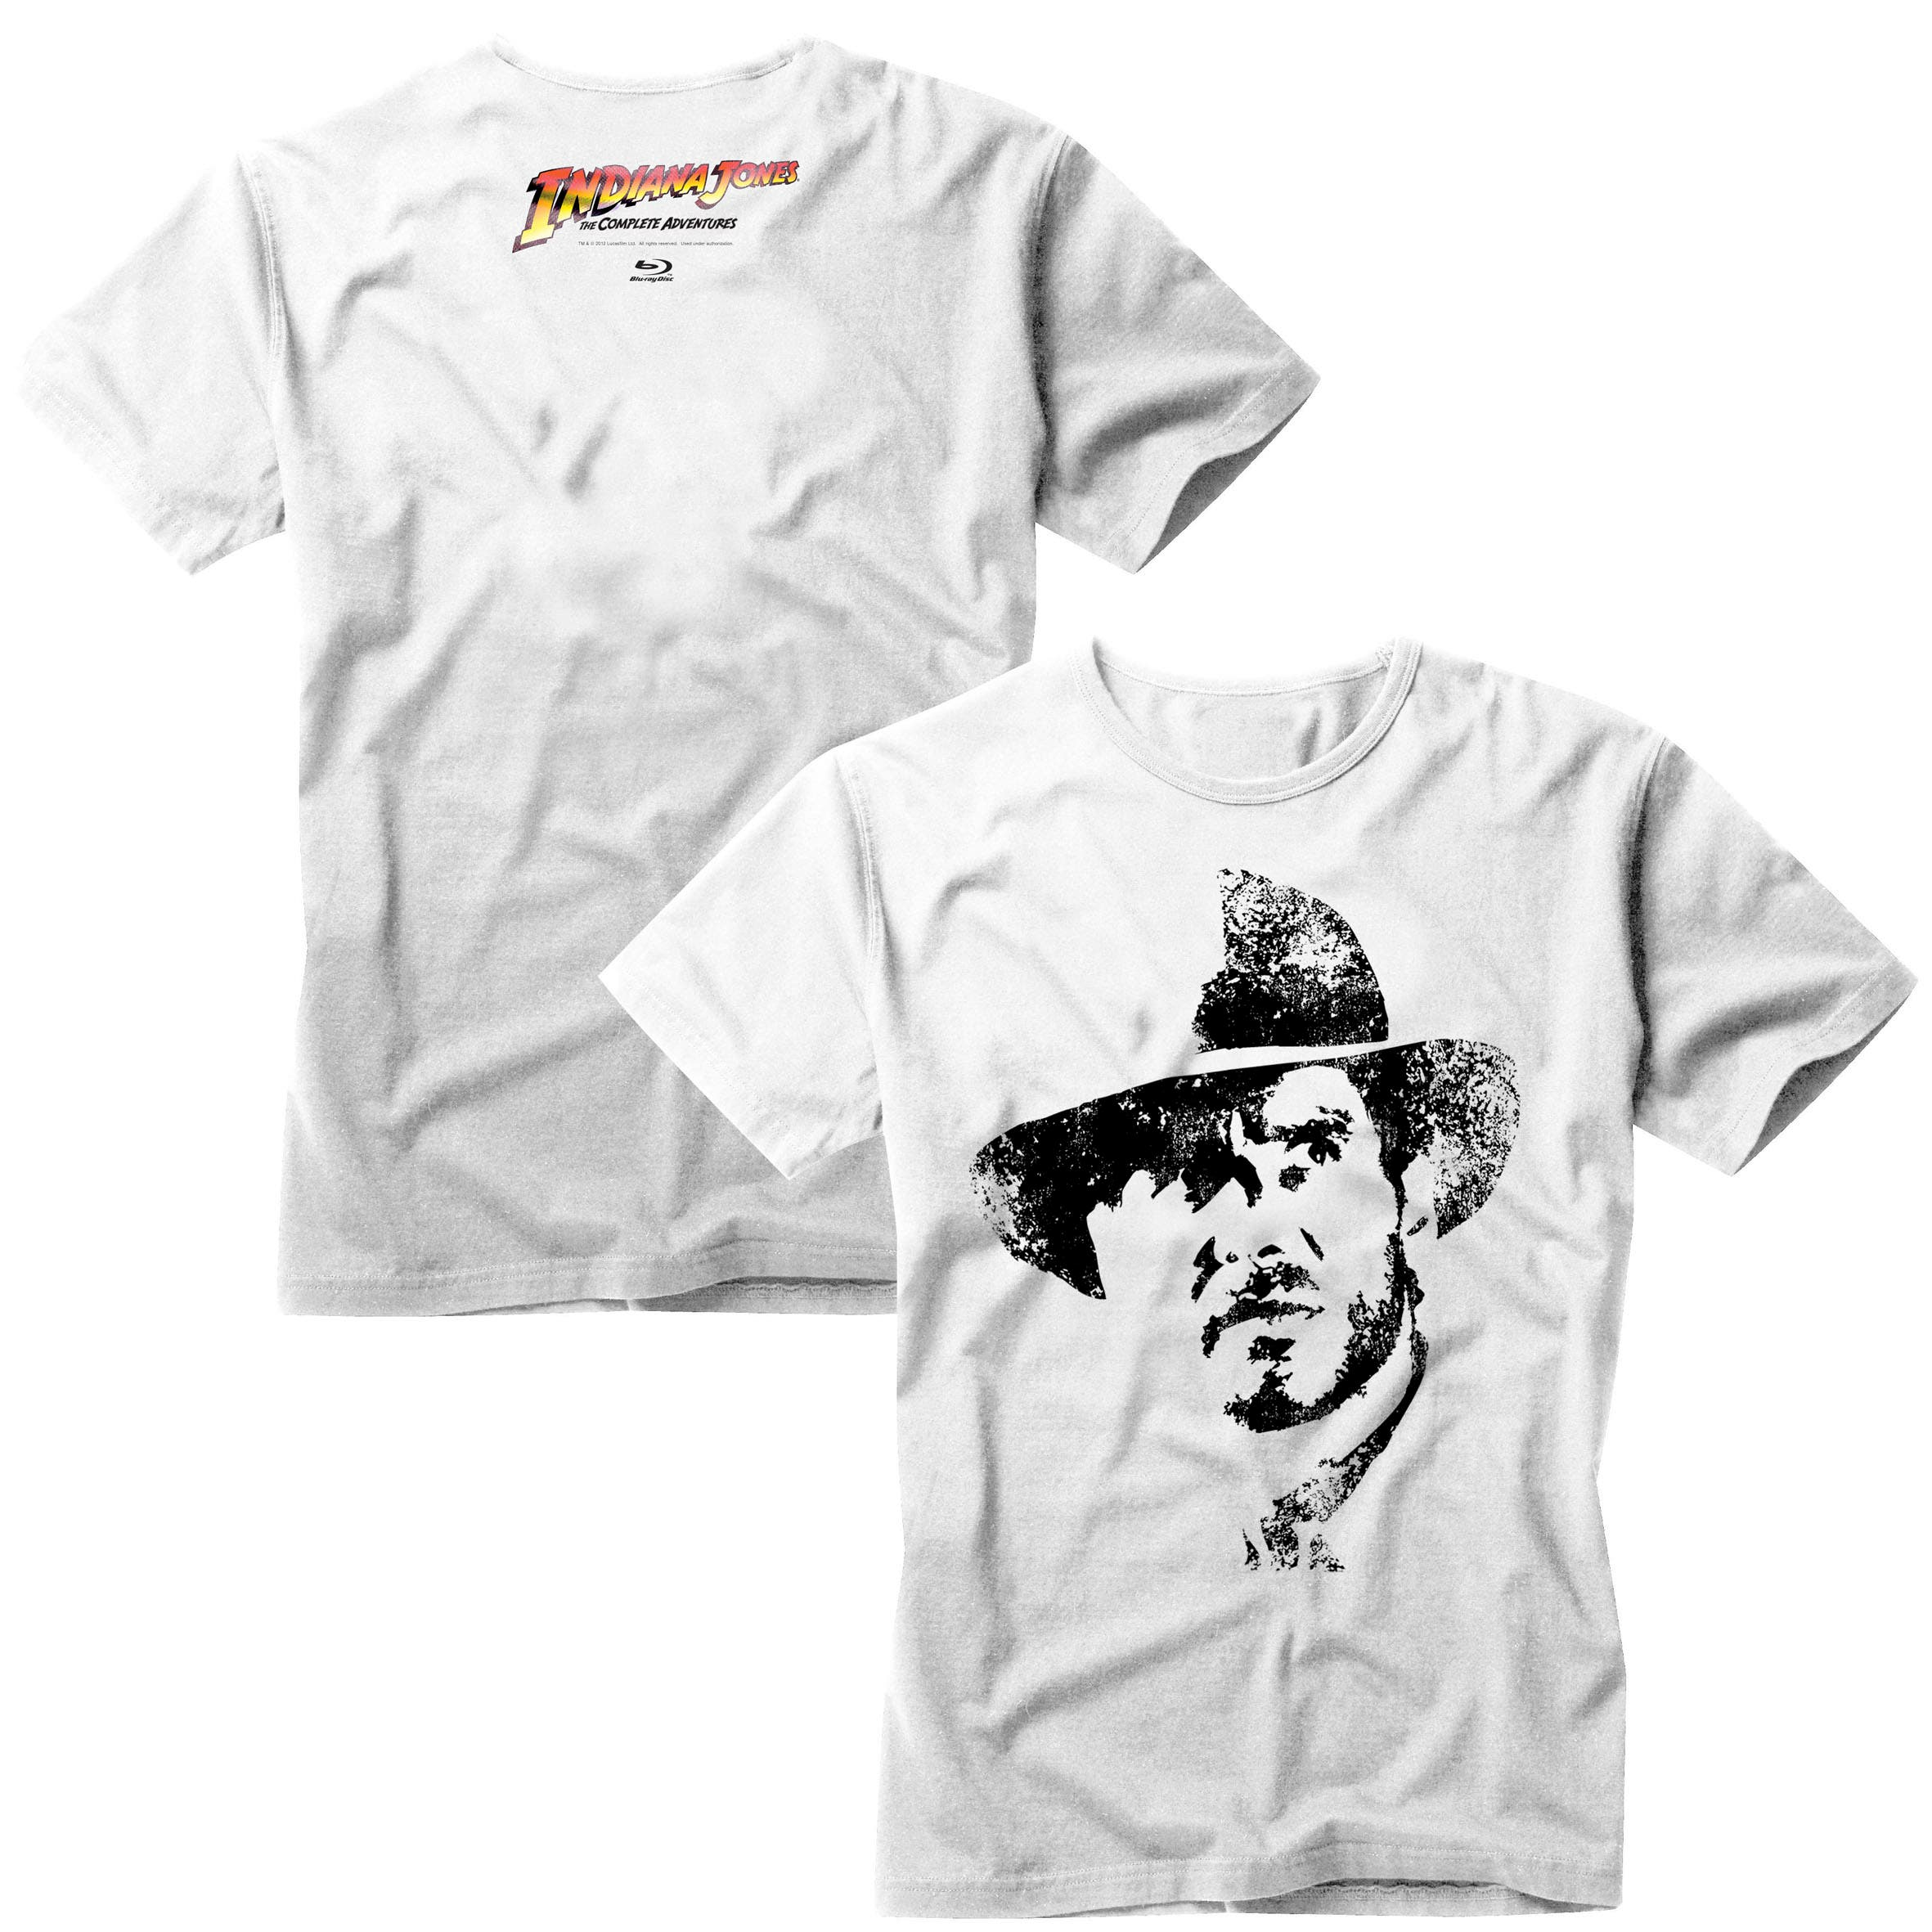 Camiseta de Indiana Jones